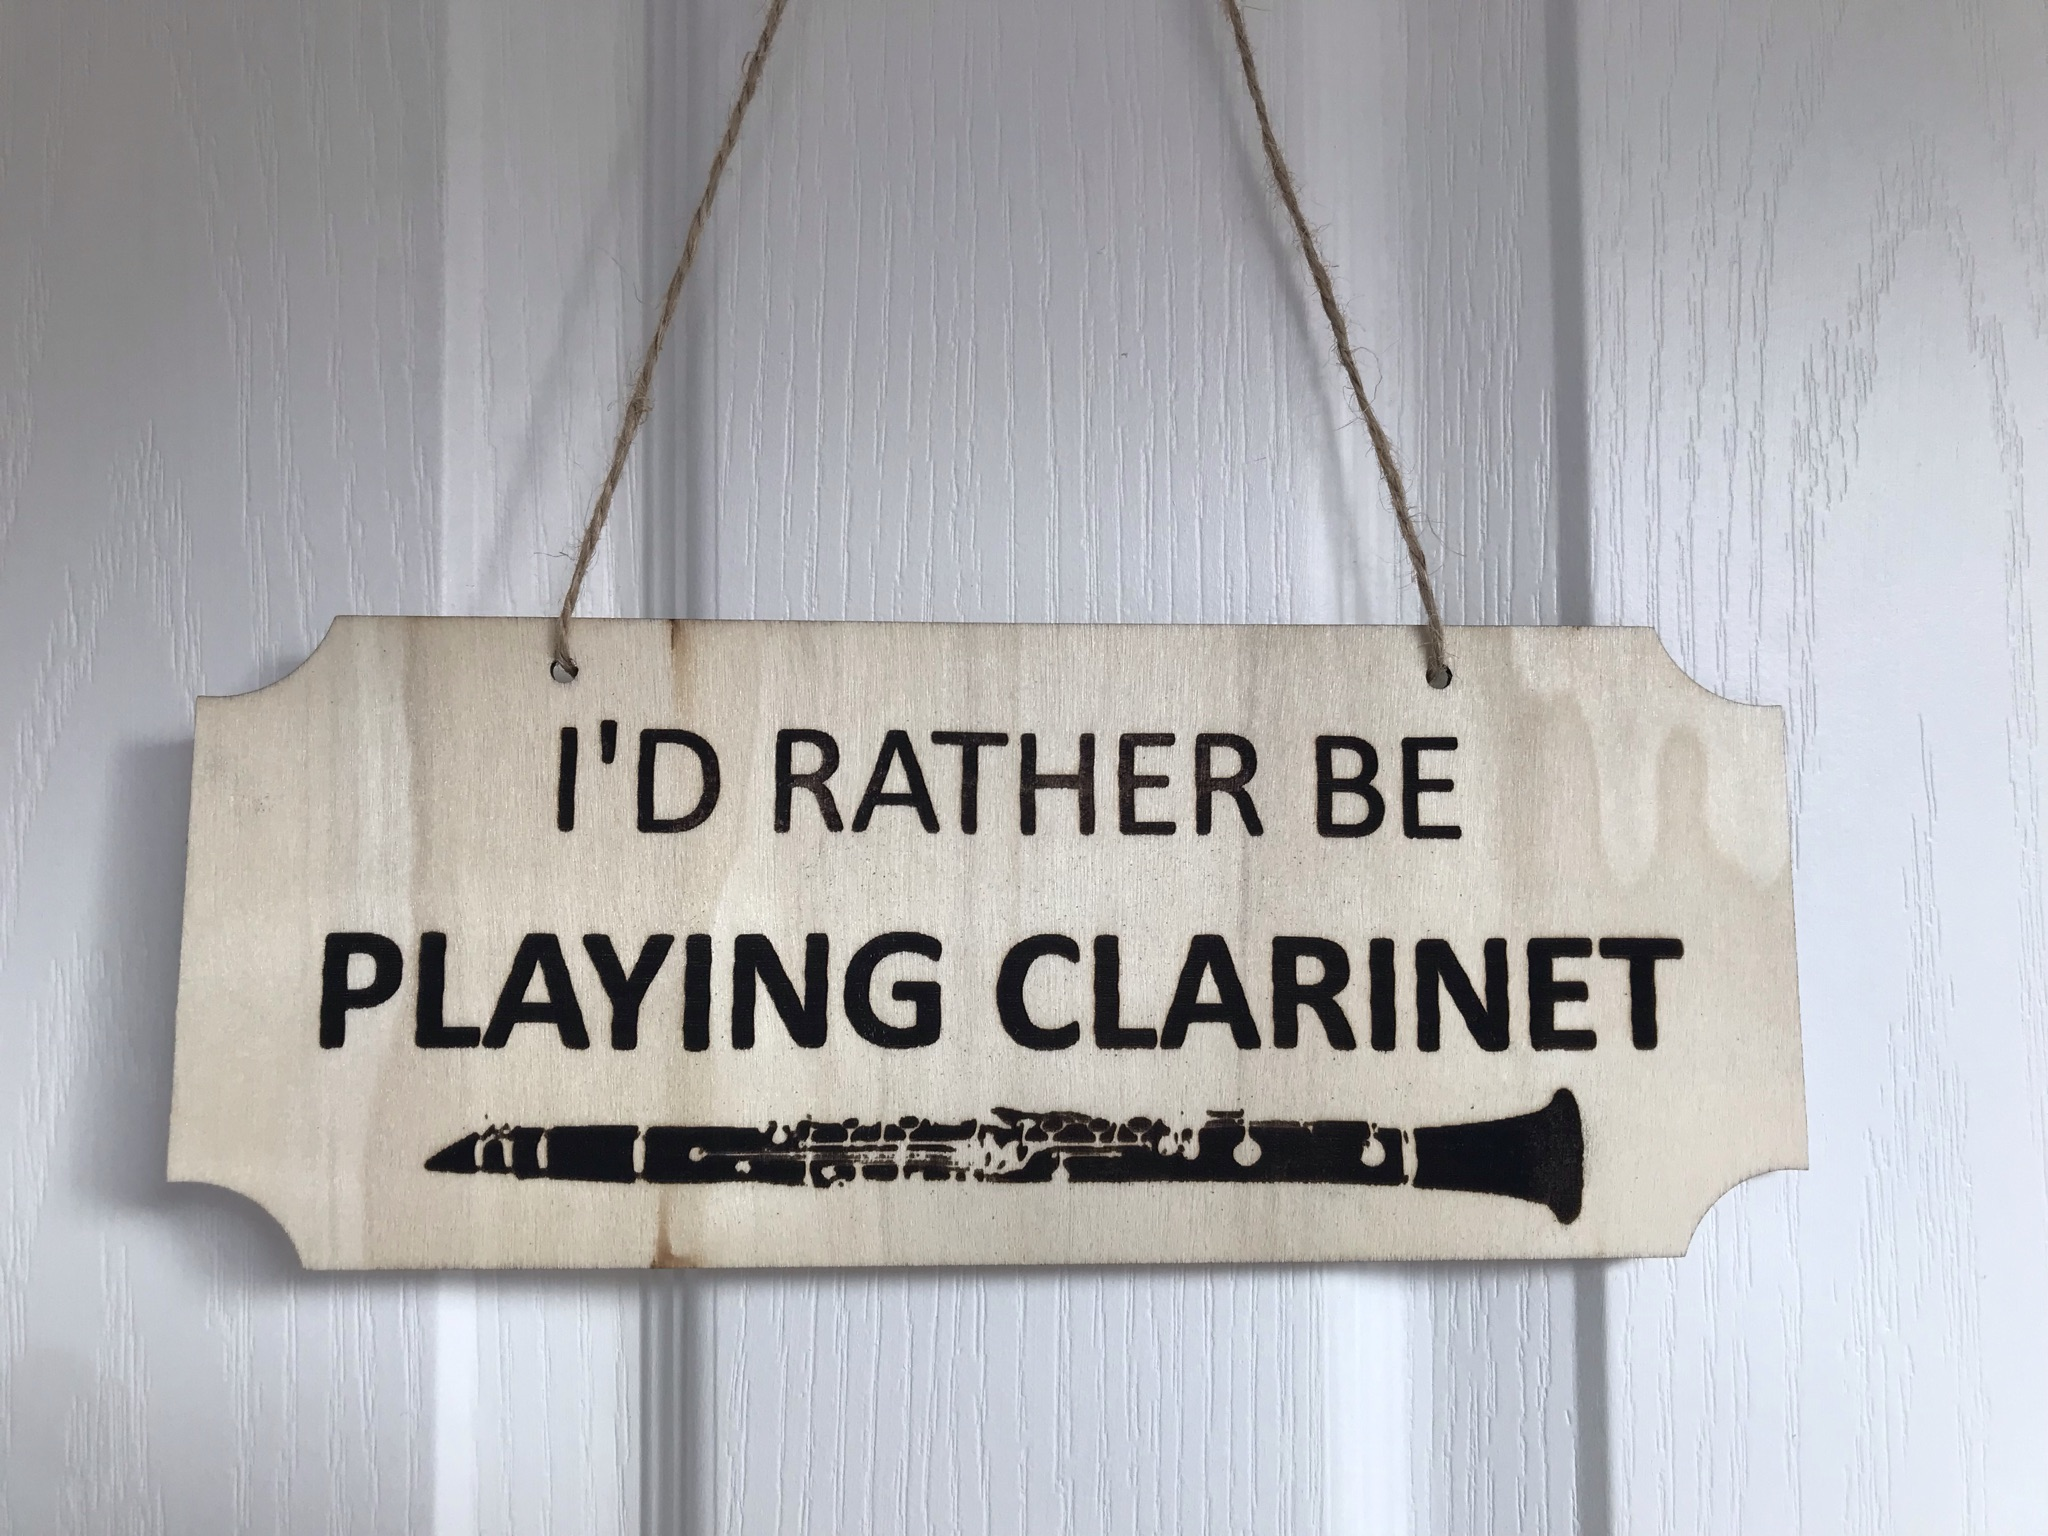 Rather be playing clarinet